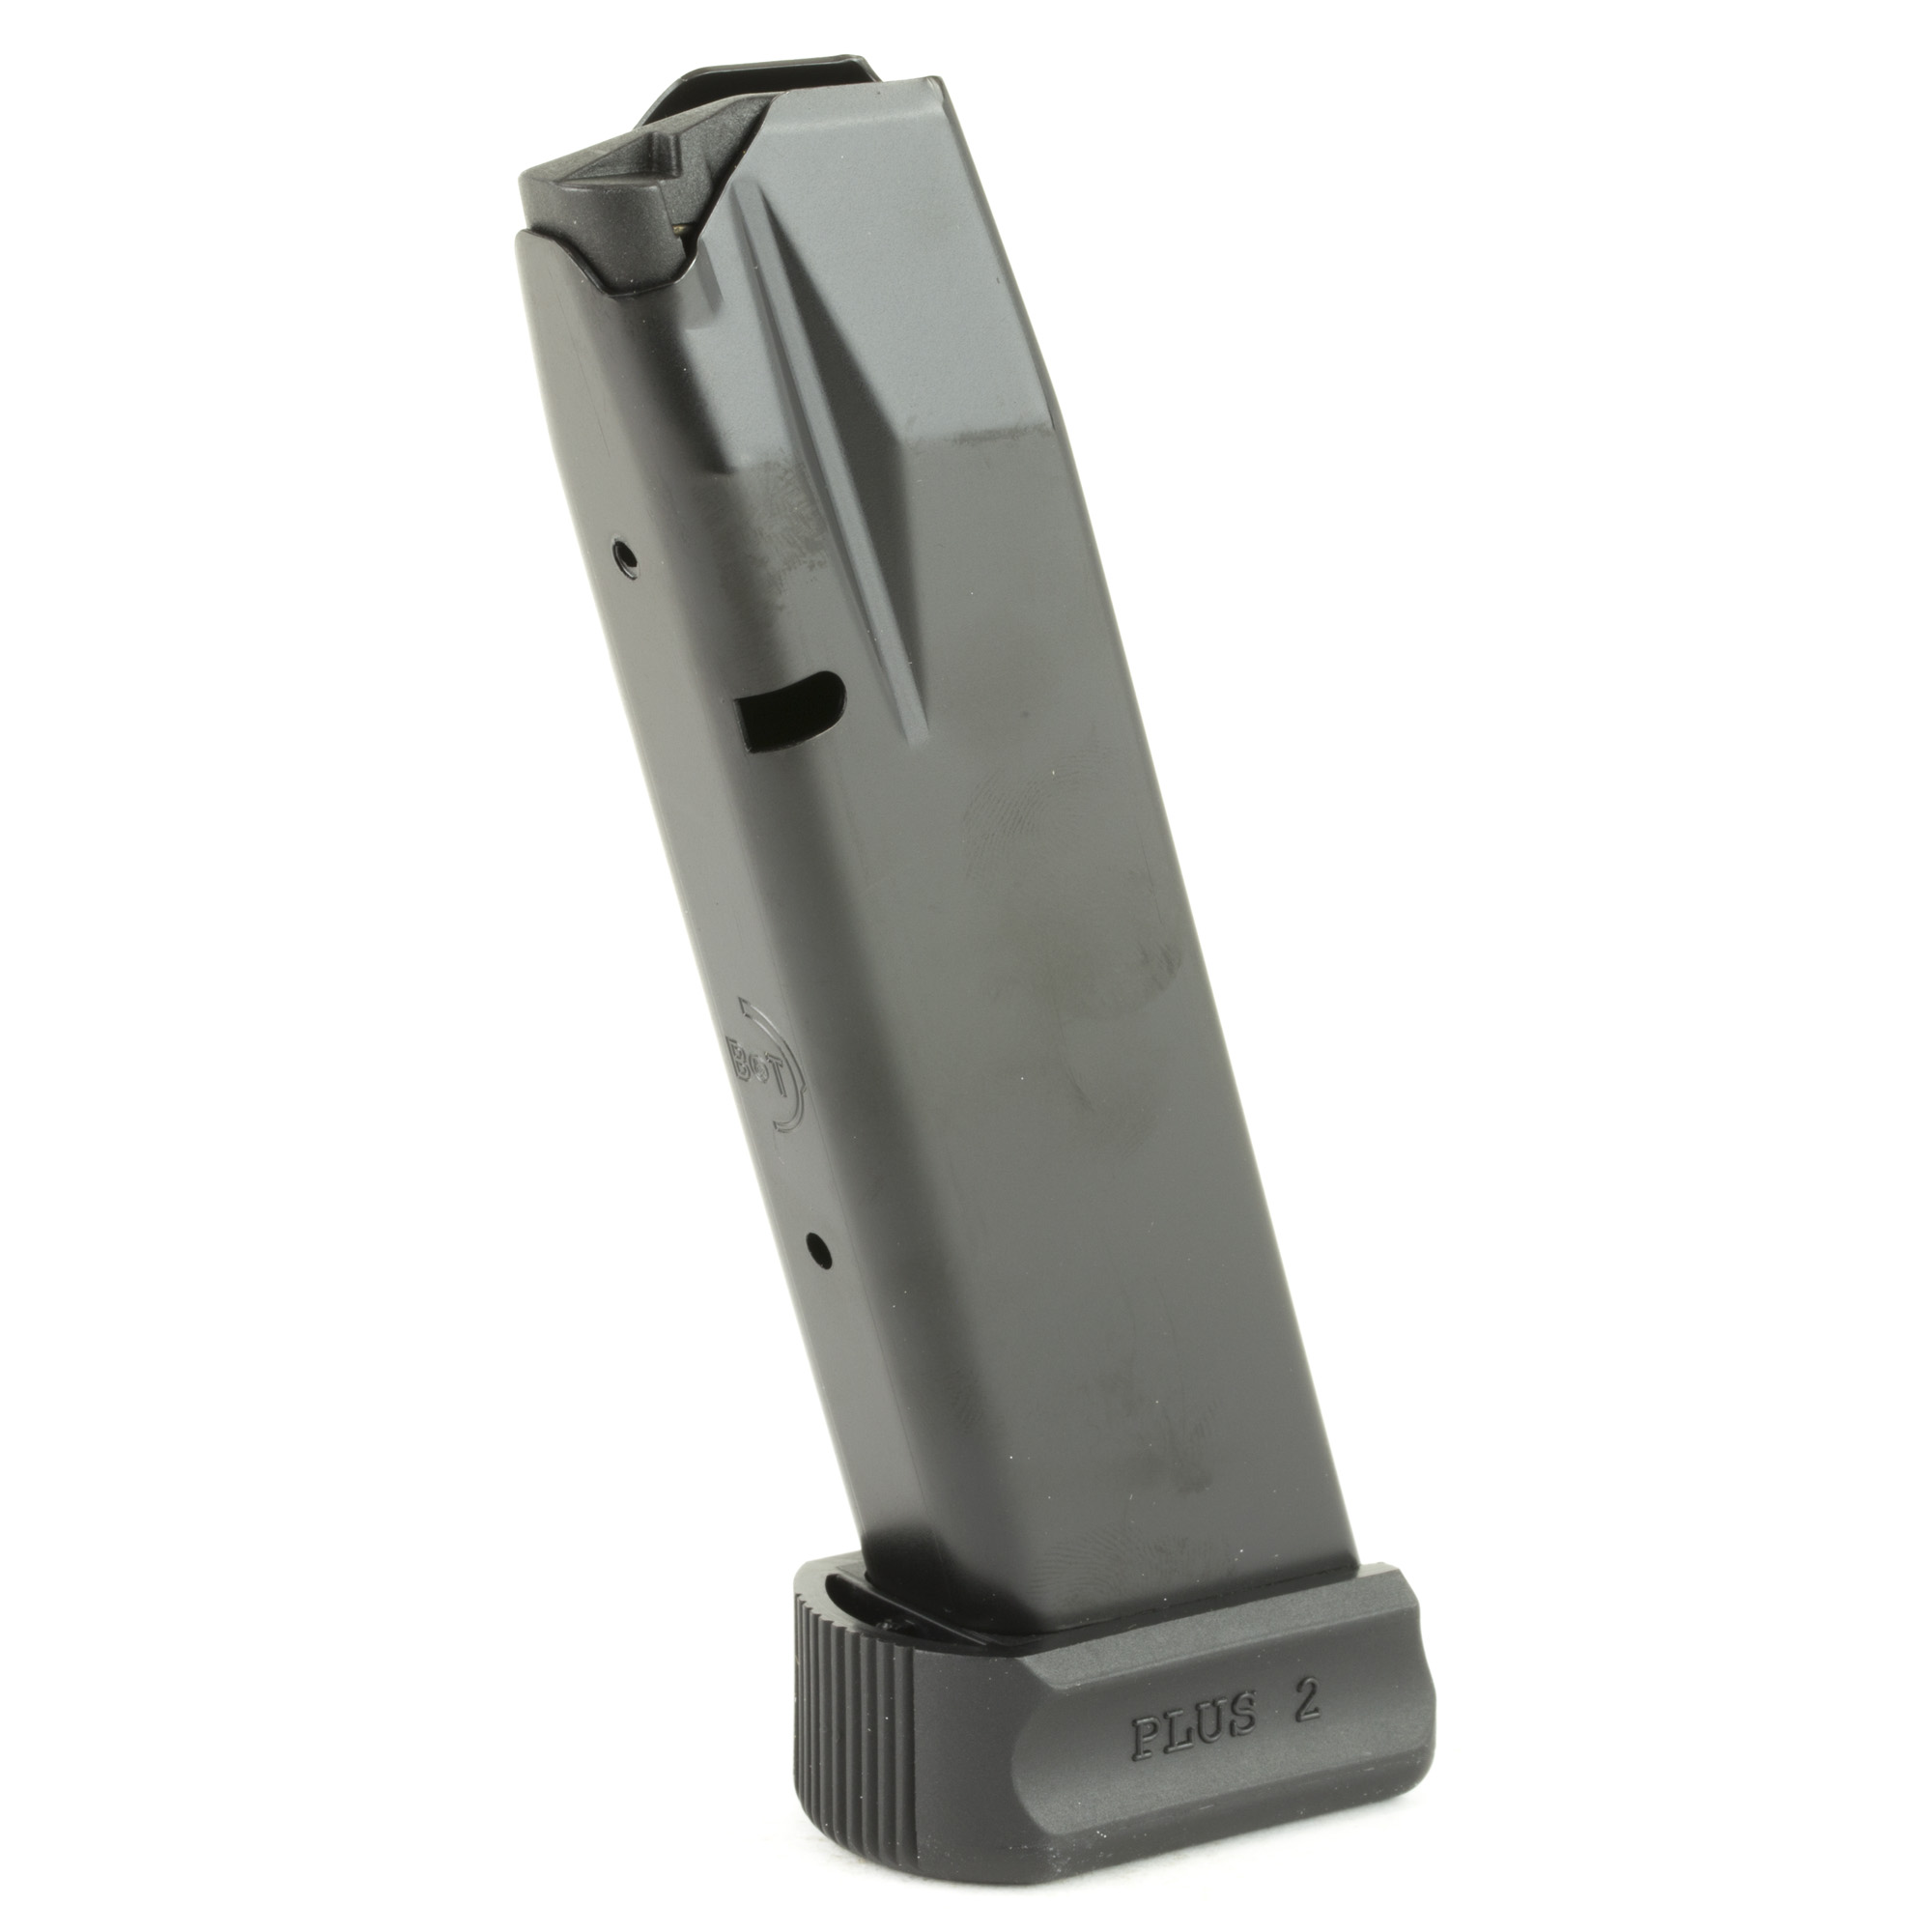 These B&T's USW replacement magazines feature the same reliability as the mags that ship with new B&T firearms. These high quality factory magazines hold 19 rounds of 9mm ammunition.